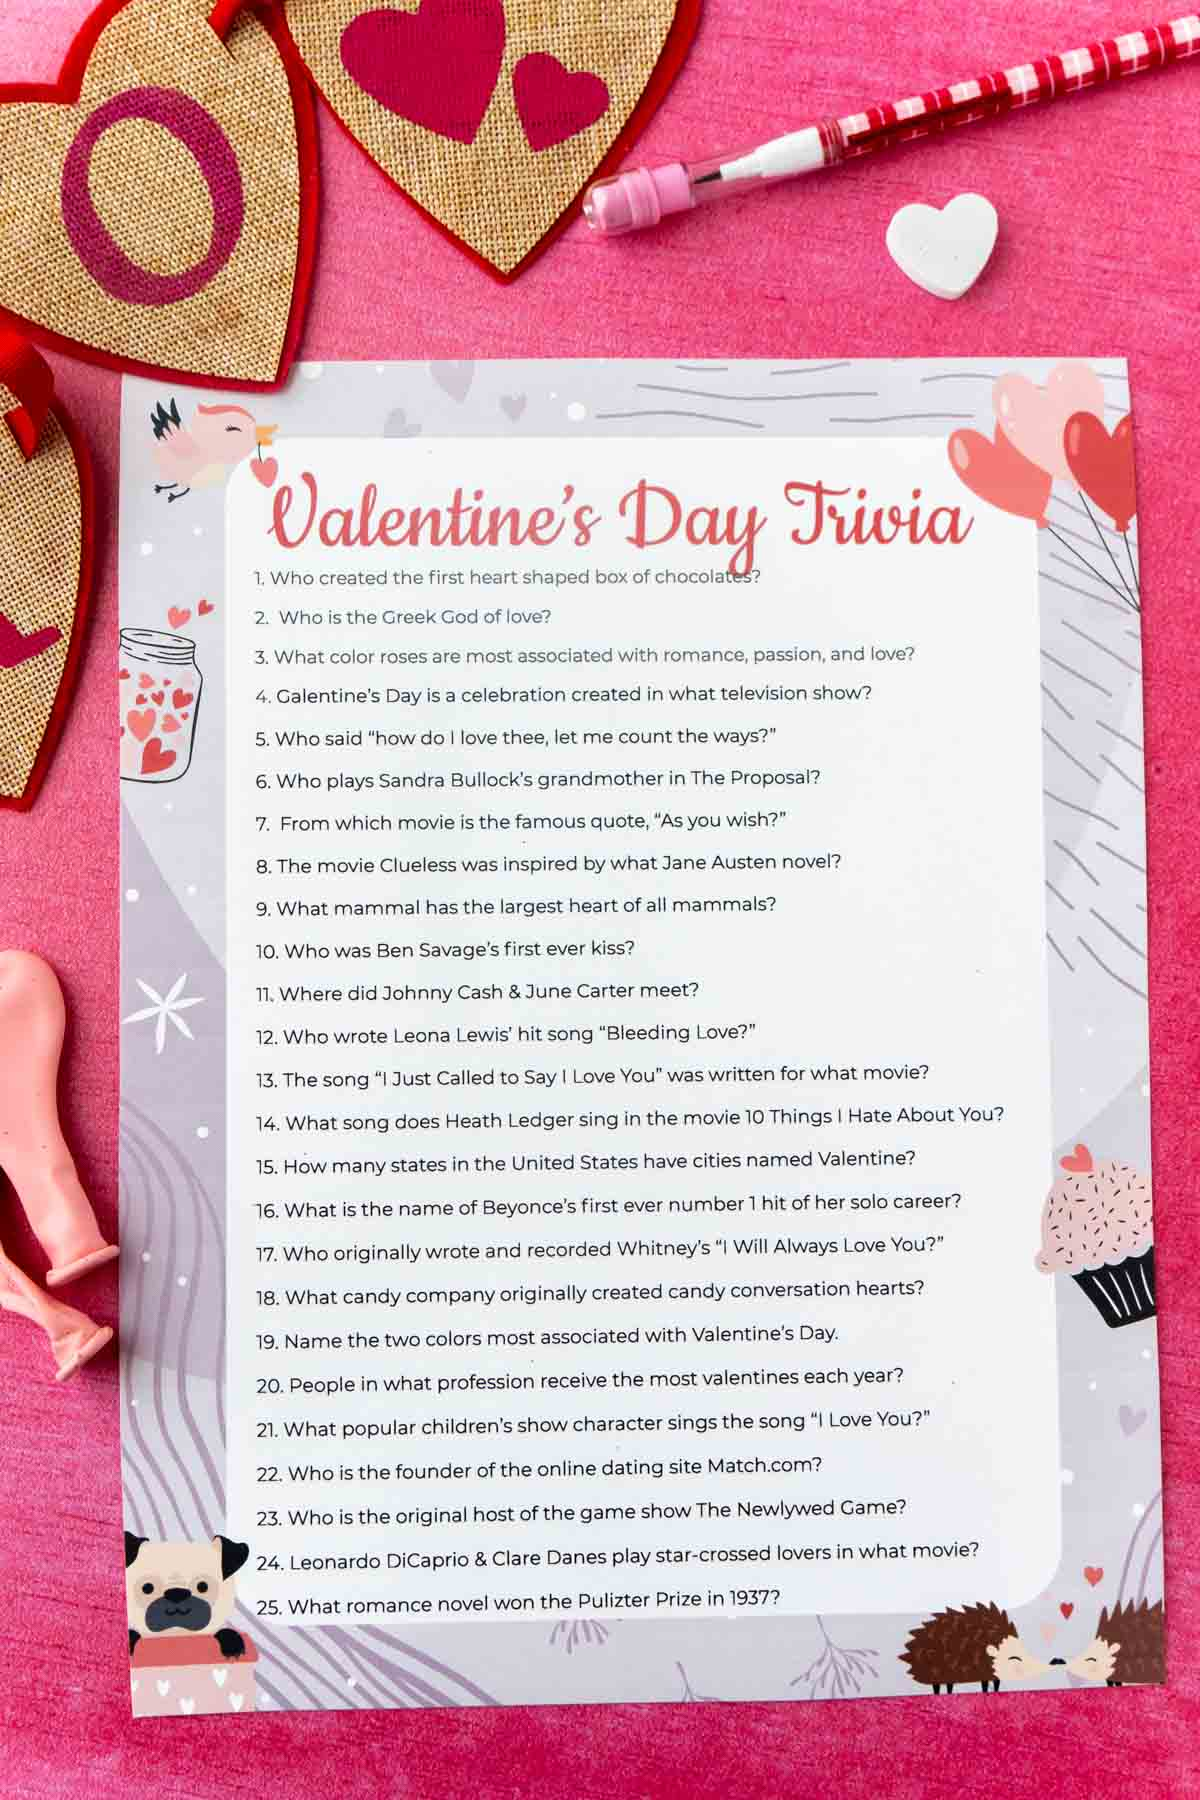 Printed out Valentines trivia game